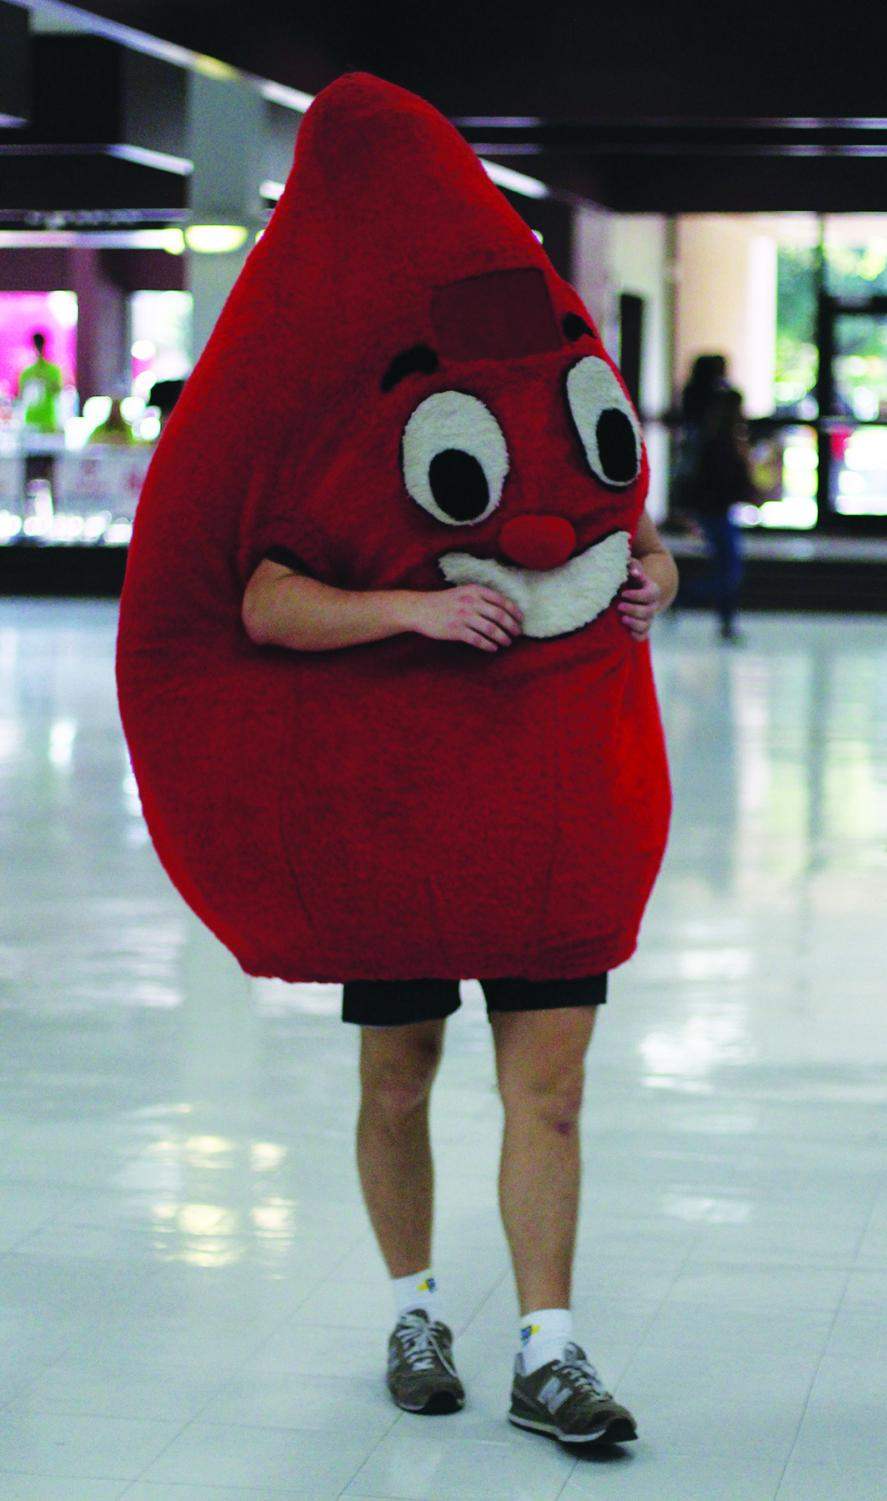 Student in BloodCare blood drop character suit entertains students waiting their turn to give blood.